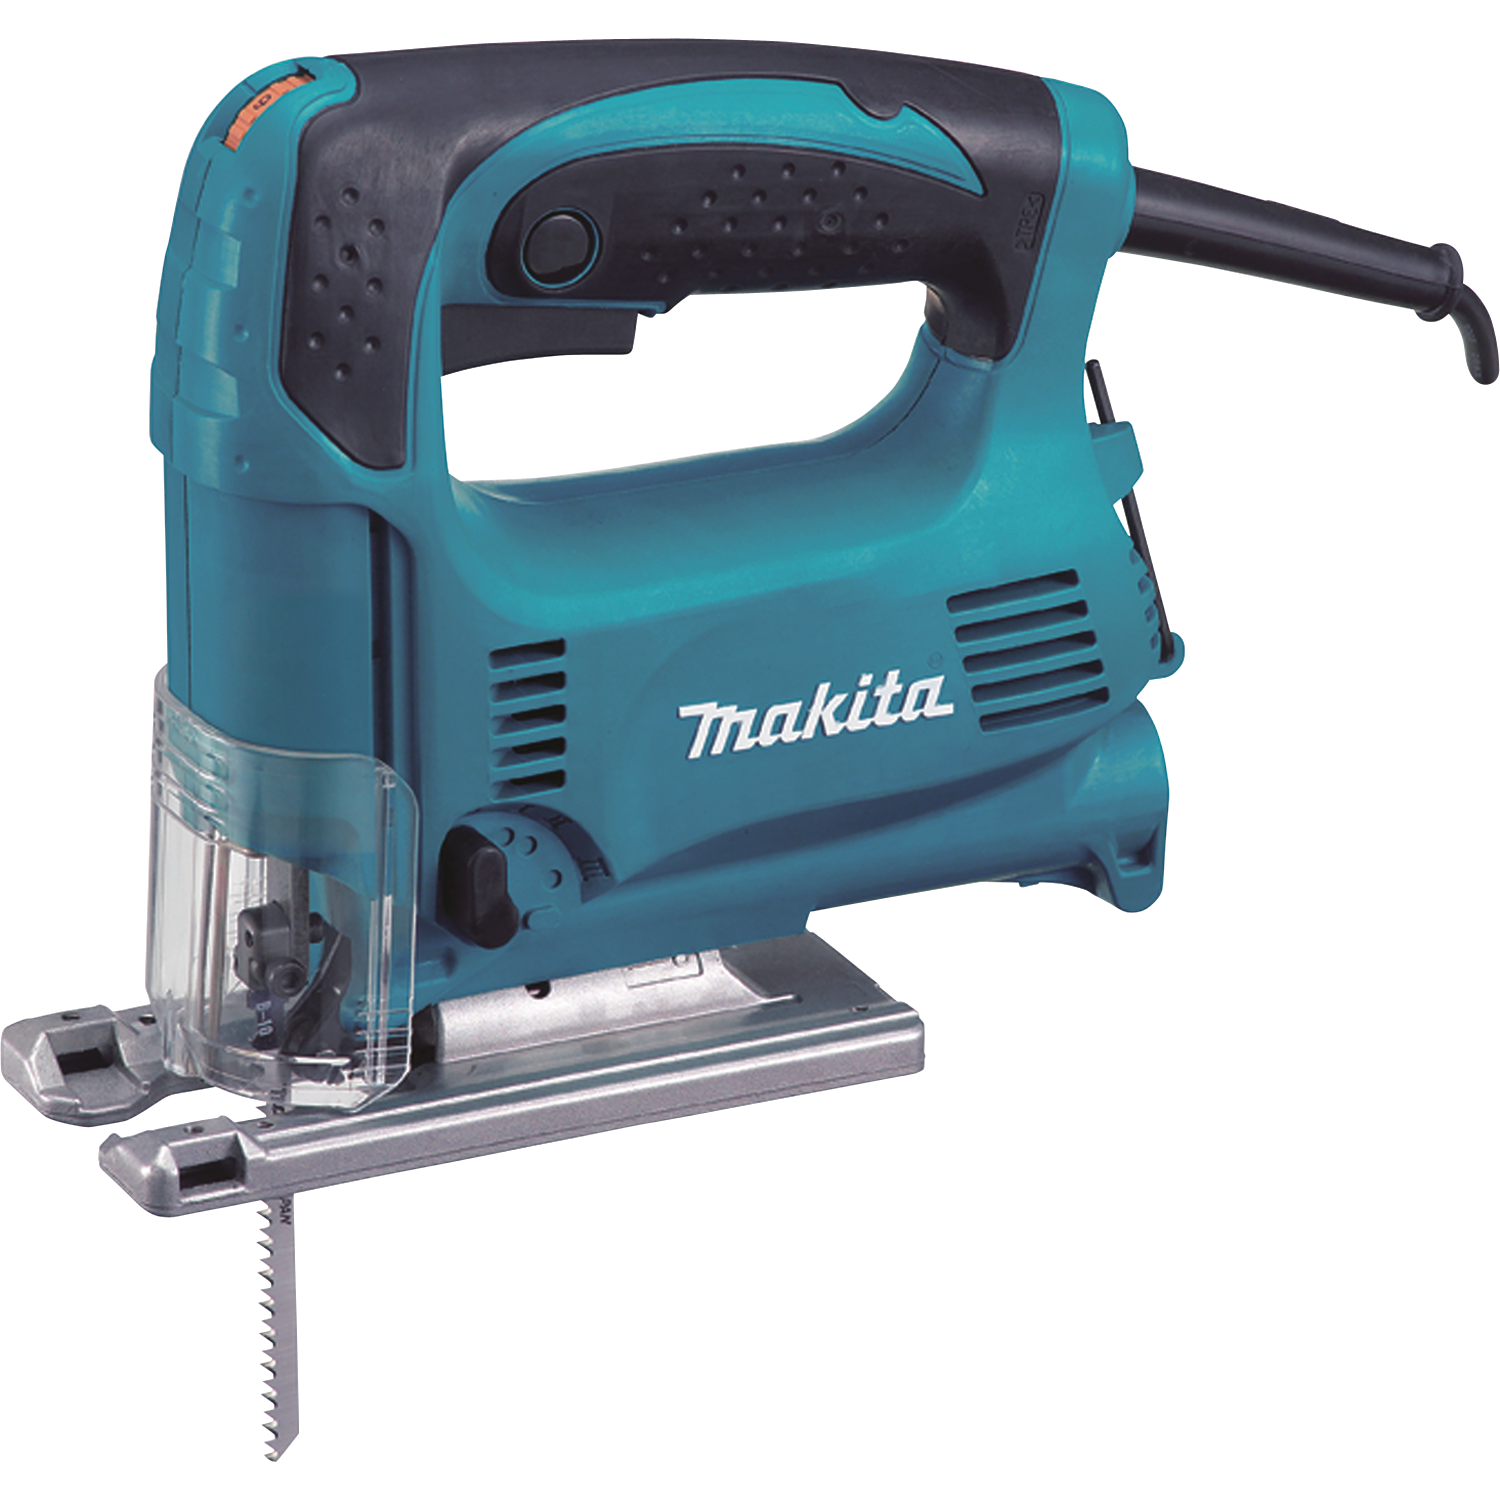 Makita usa product details 4329k 4329k greentooth Images